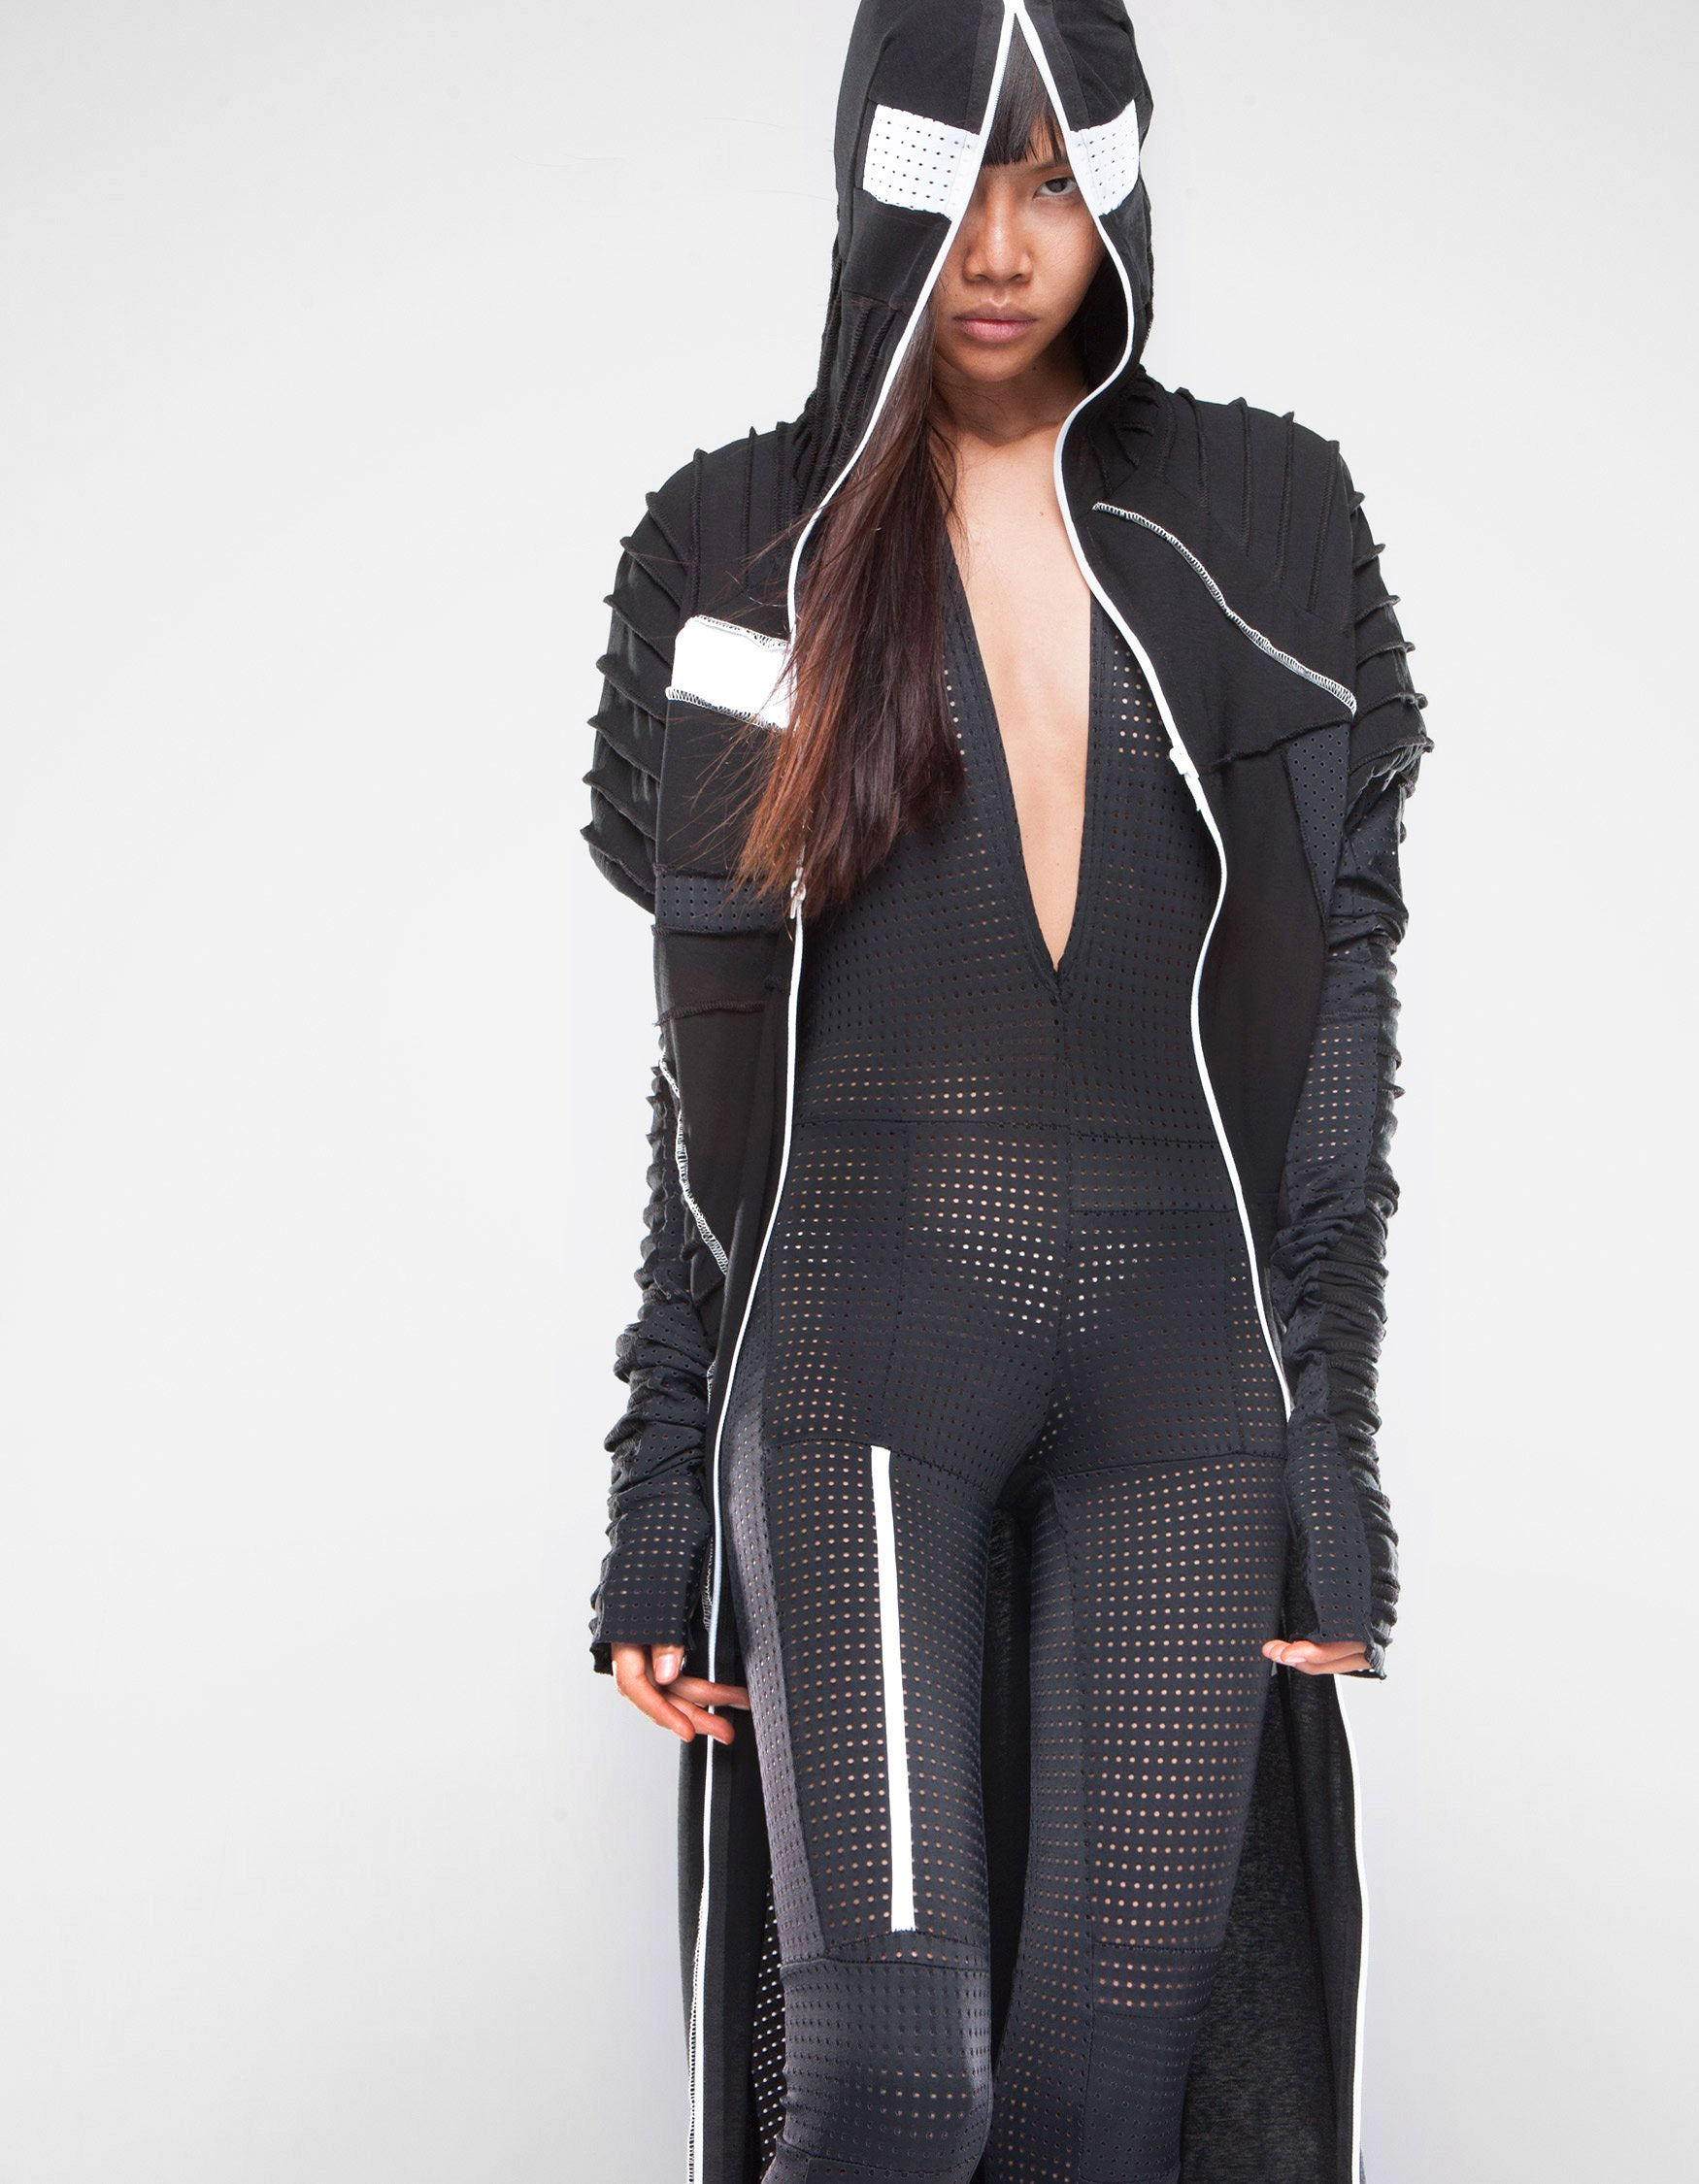 DRESS ELECTRIC WARRIOR